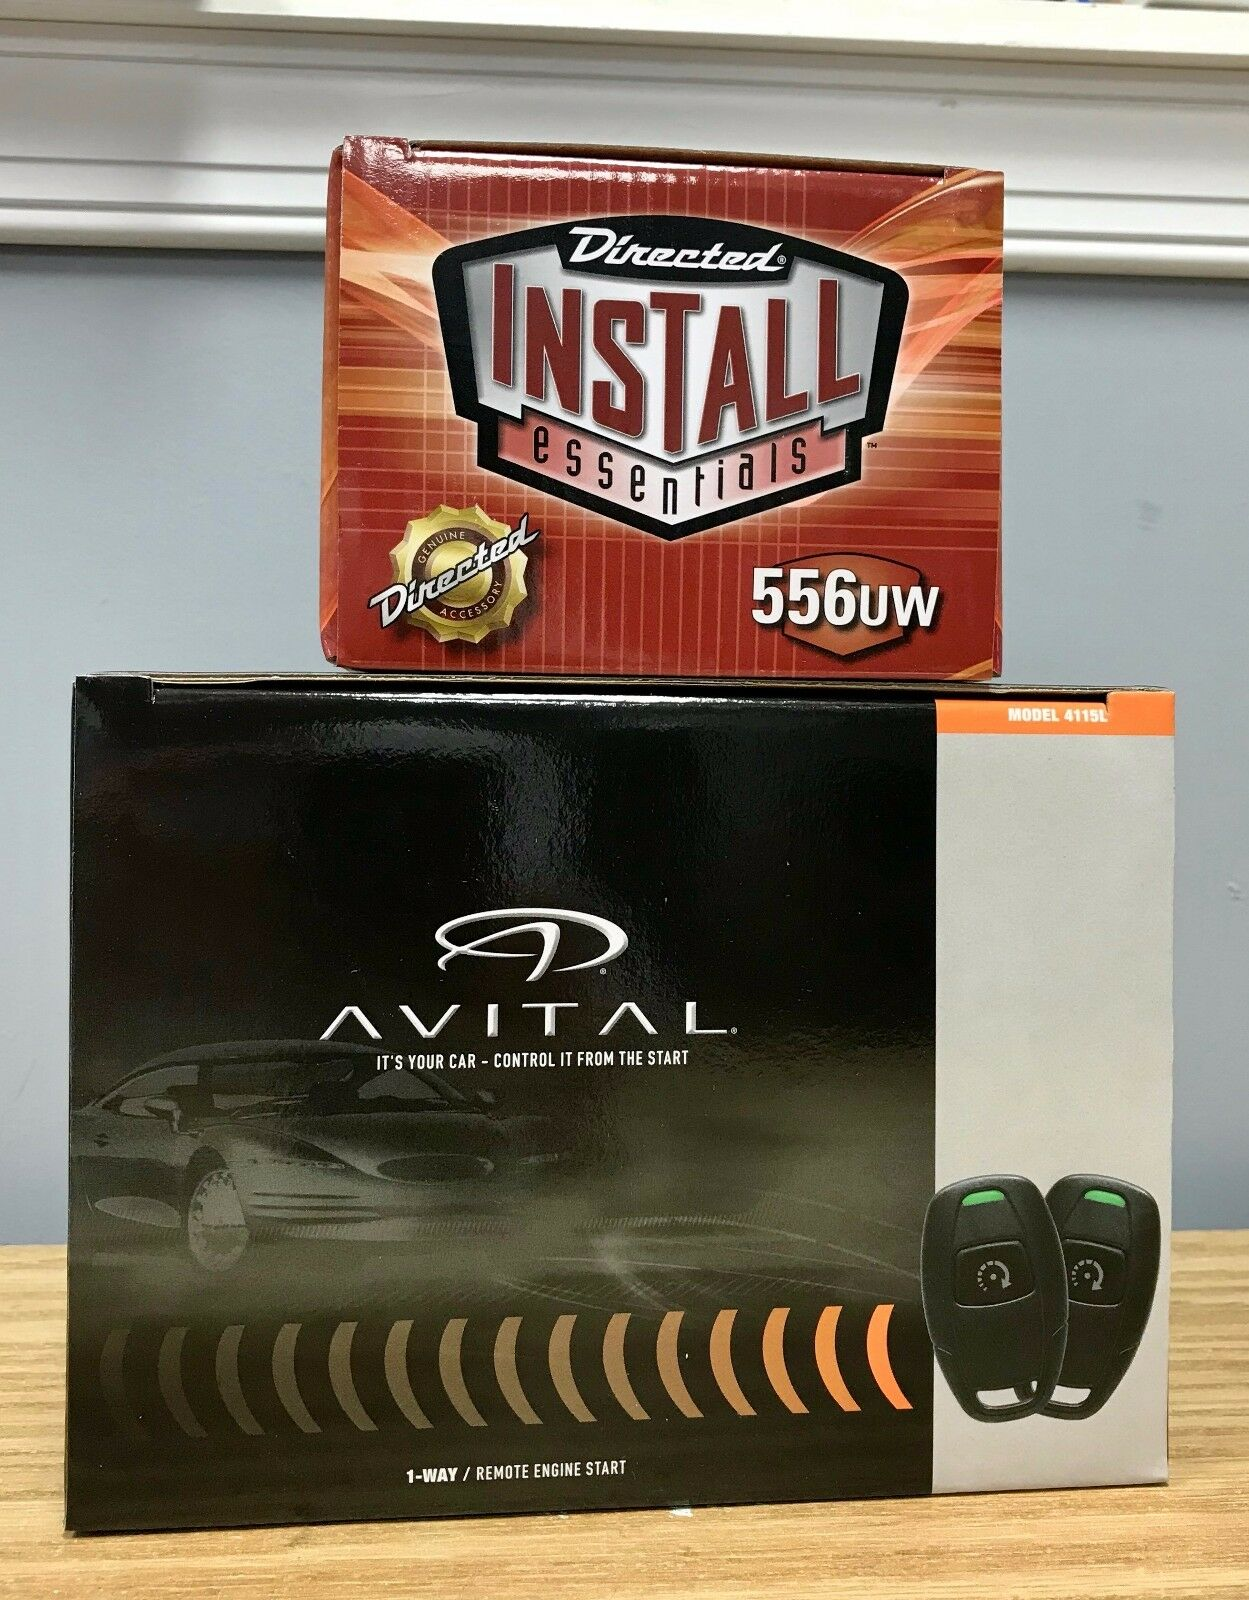 Avital 4115L Remote Start System Keyless Entry & 556UW Bypass Combo 2 items NEW